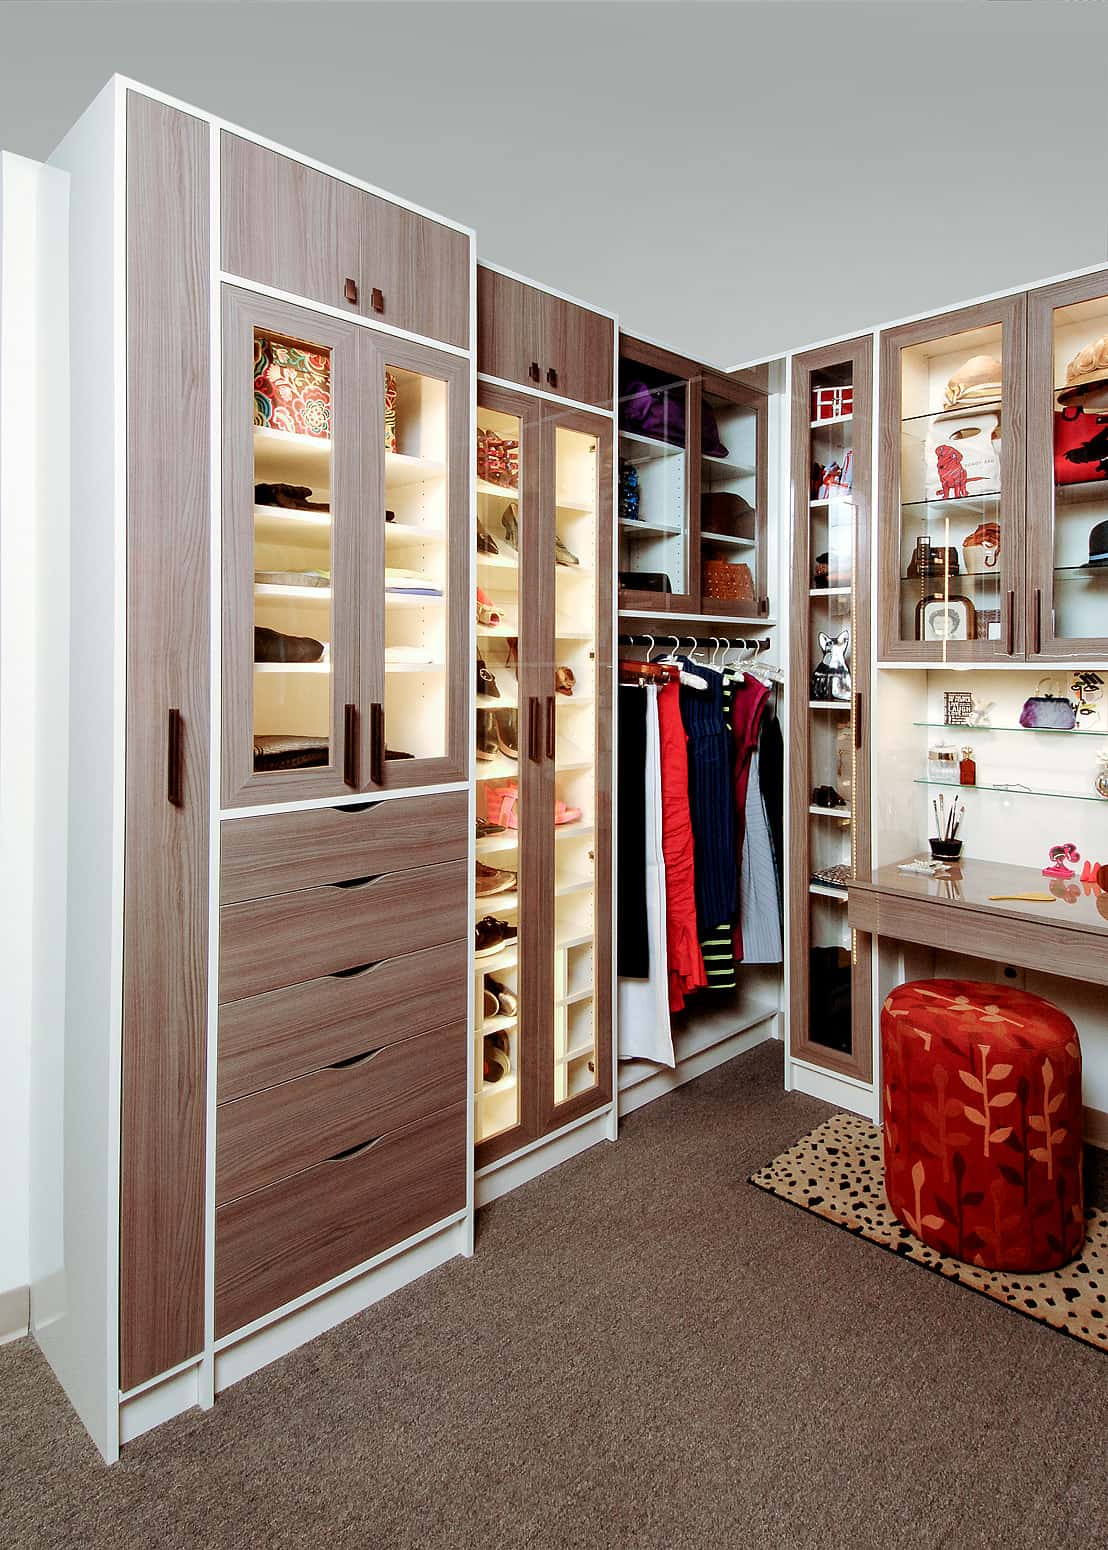 Custom closet with dresser and glass shelving.